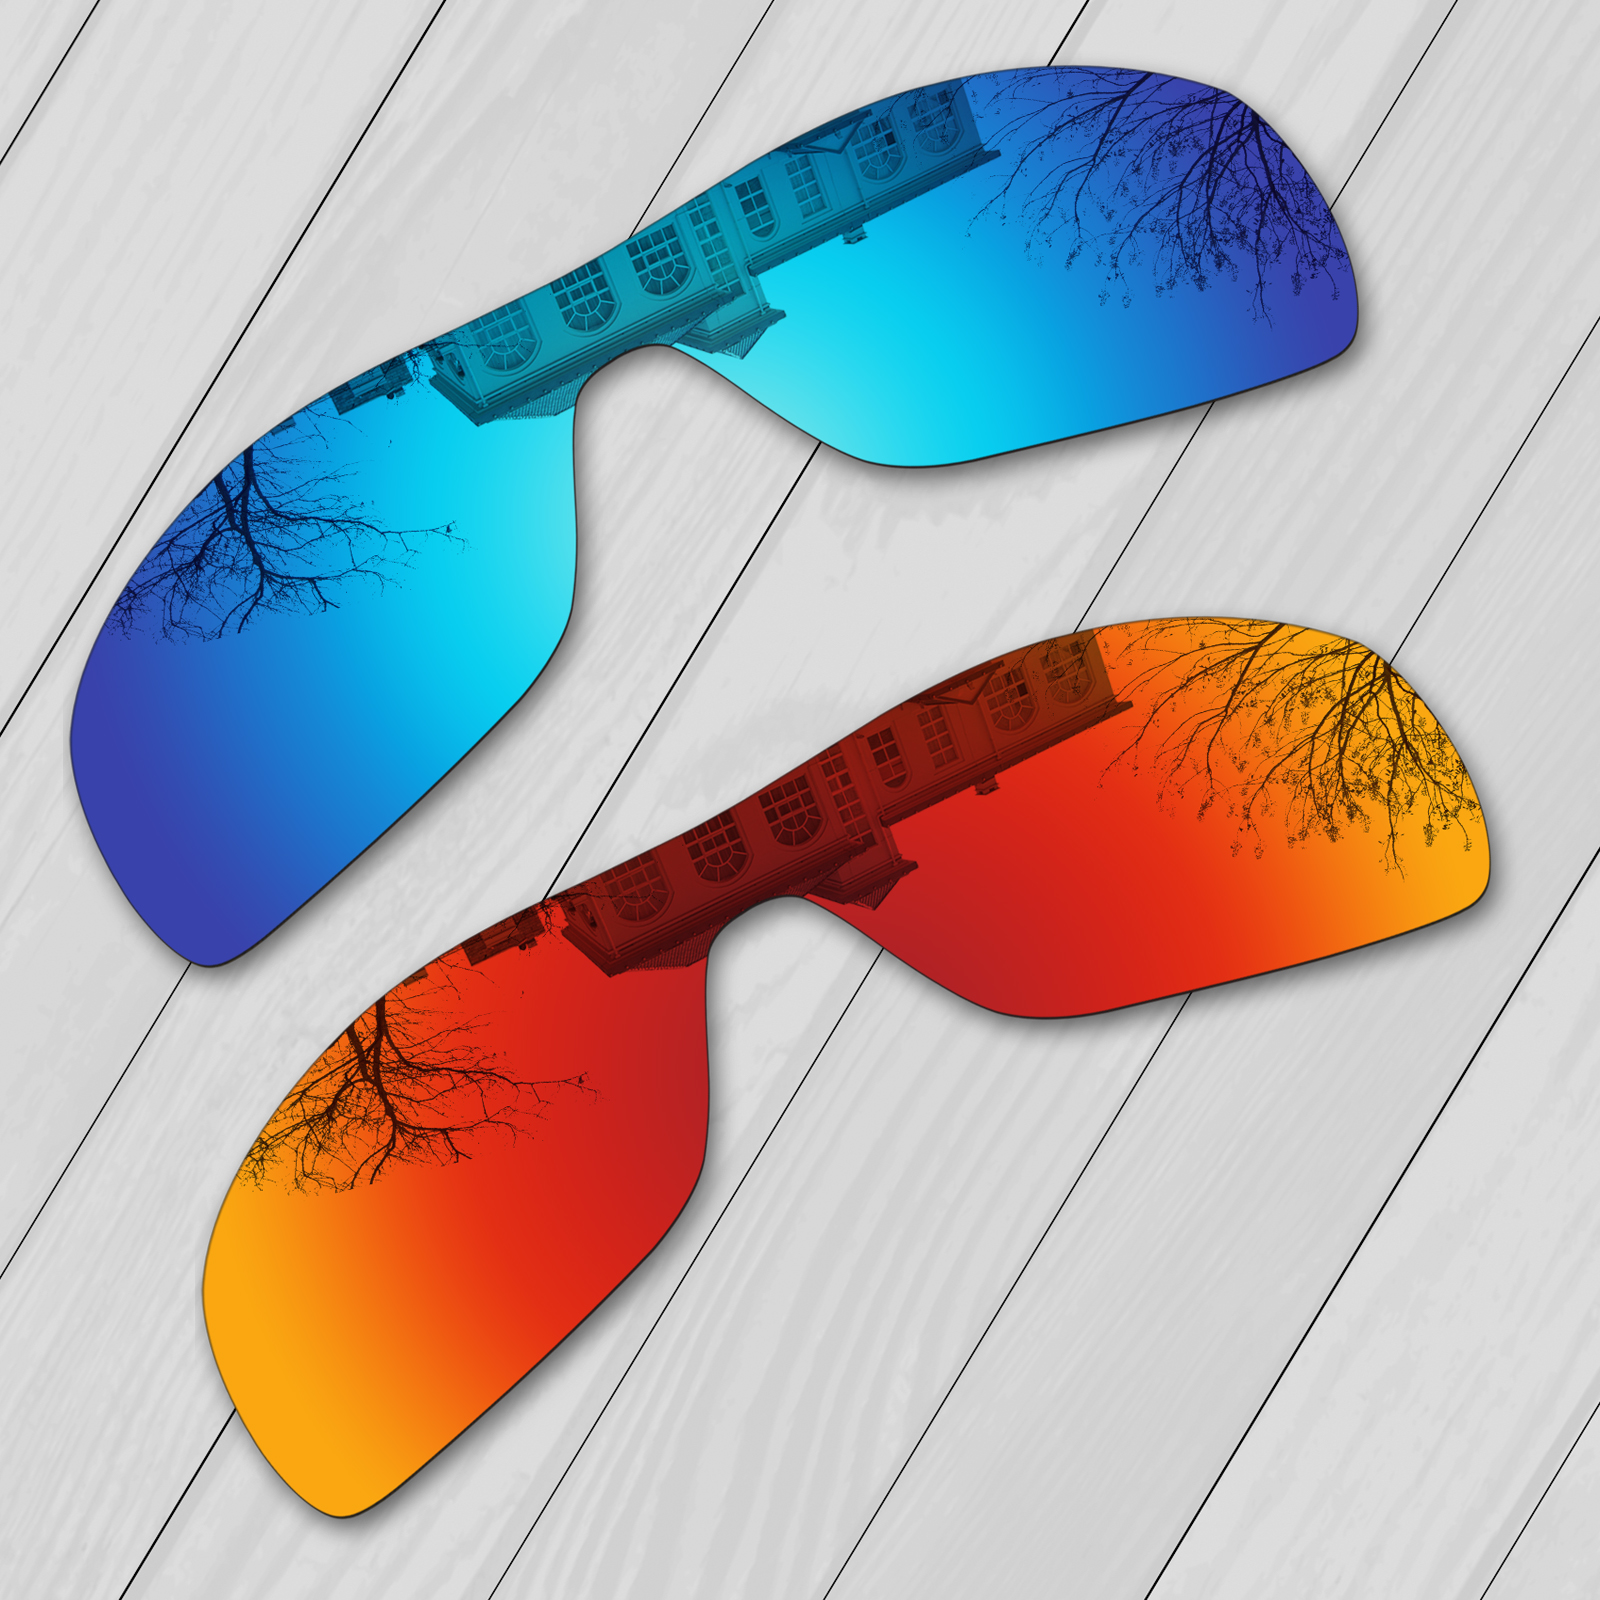 E.O.S 2 Pieces Ice Blue & Fire Red Mirror Polarized Replacement Lenses for Oakley Turbine Rotor OO9307Sunglasses